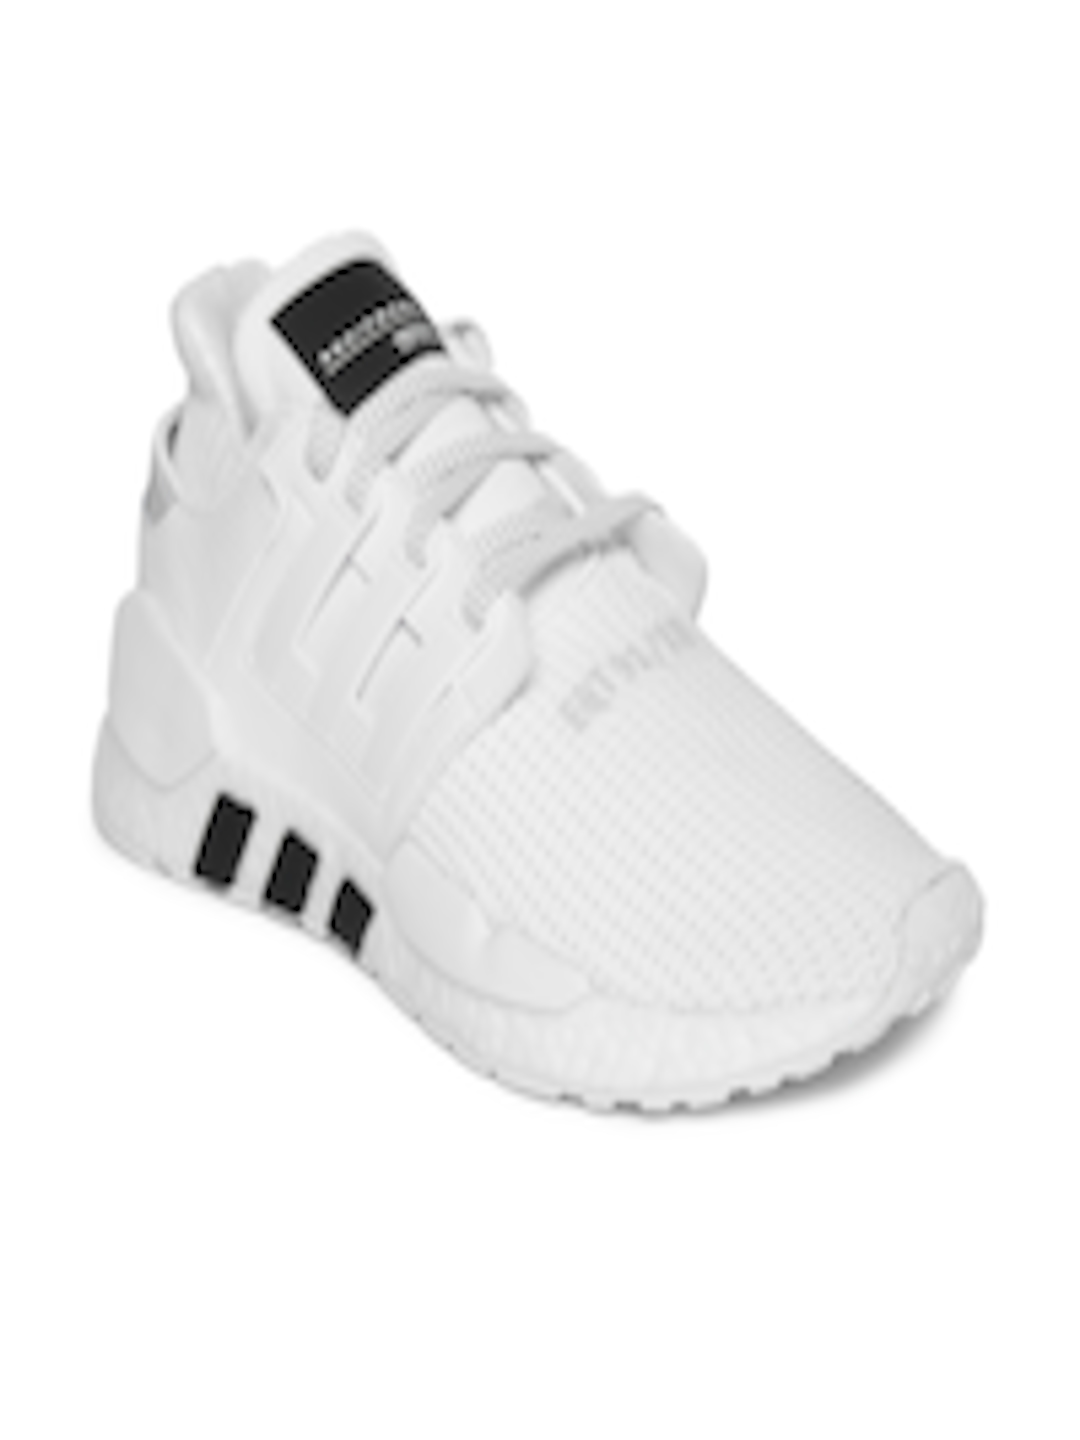 lowest price 11e62 7c8b0 Buy ADIDAS Originals Men White EQT Support 91/18 Sneakers - - Footwear for  Men